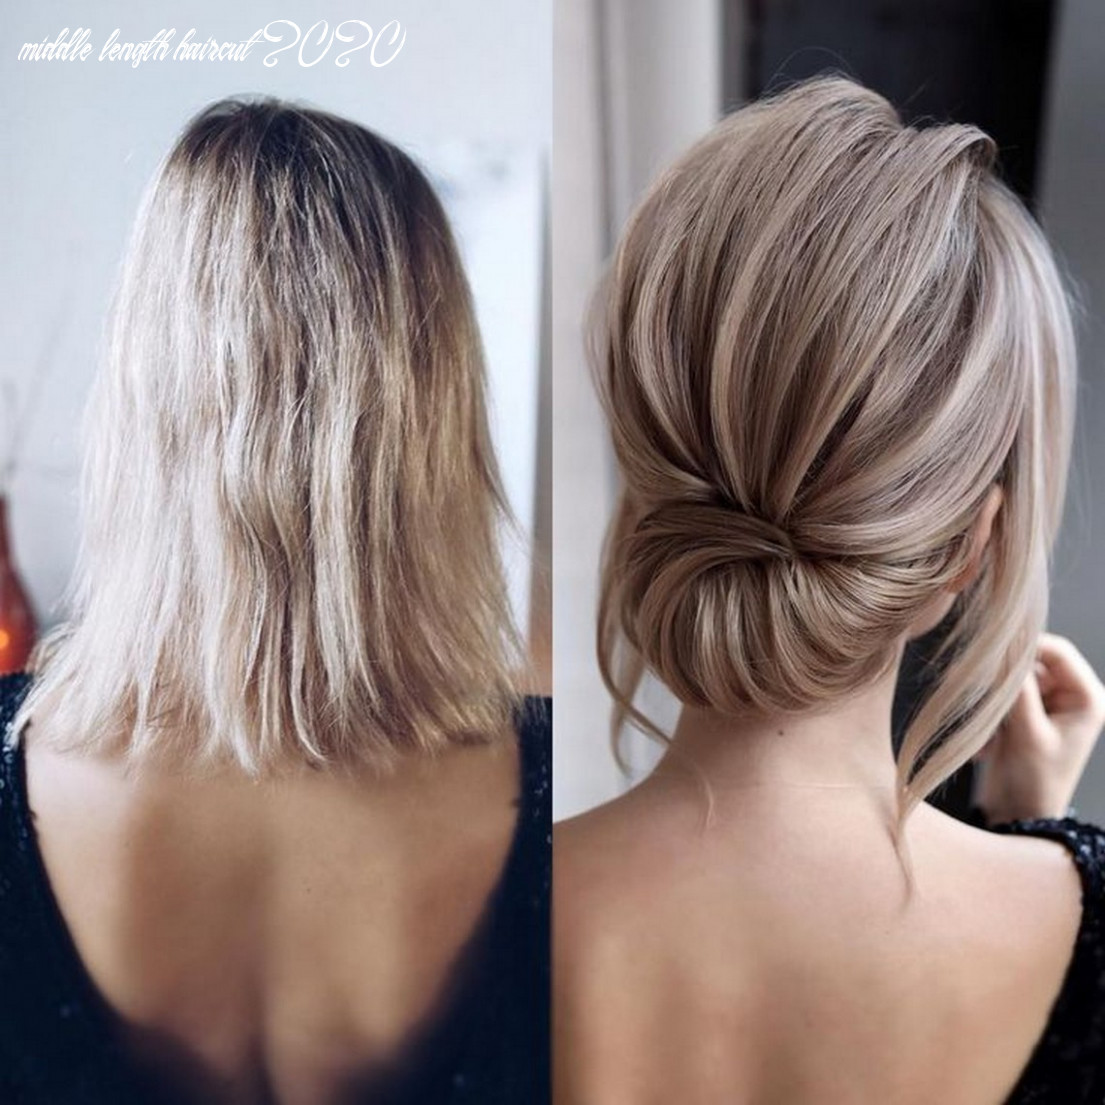 11 medium length wedding hairstyles for 11 brides inspira middle length haircut 2020